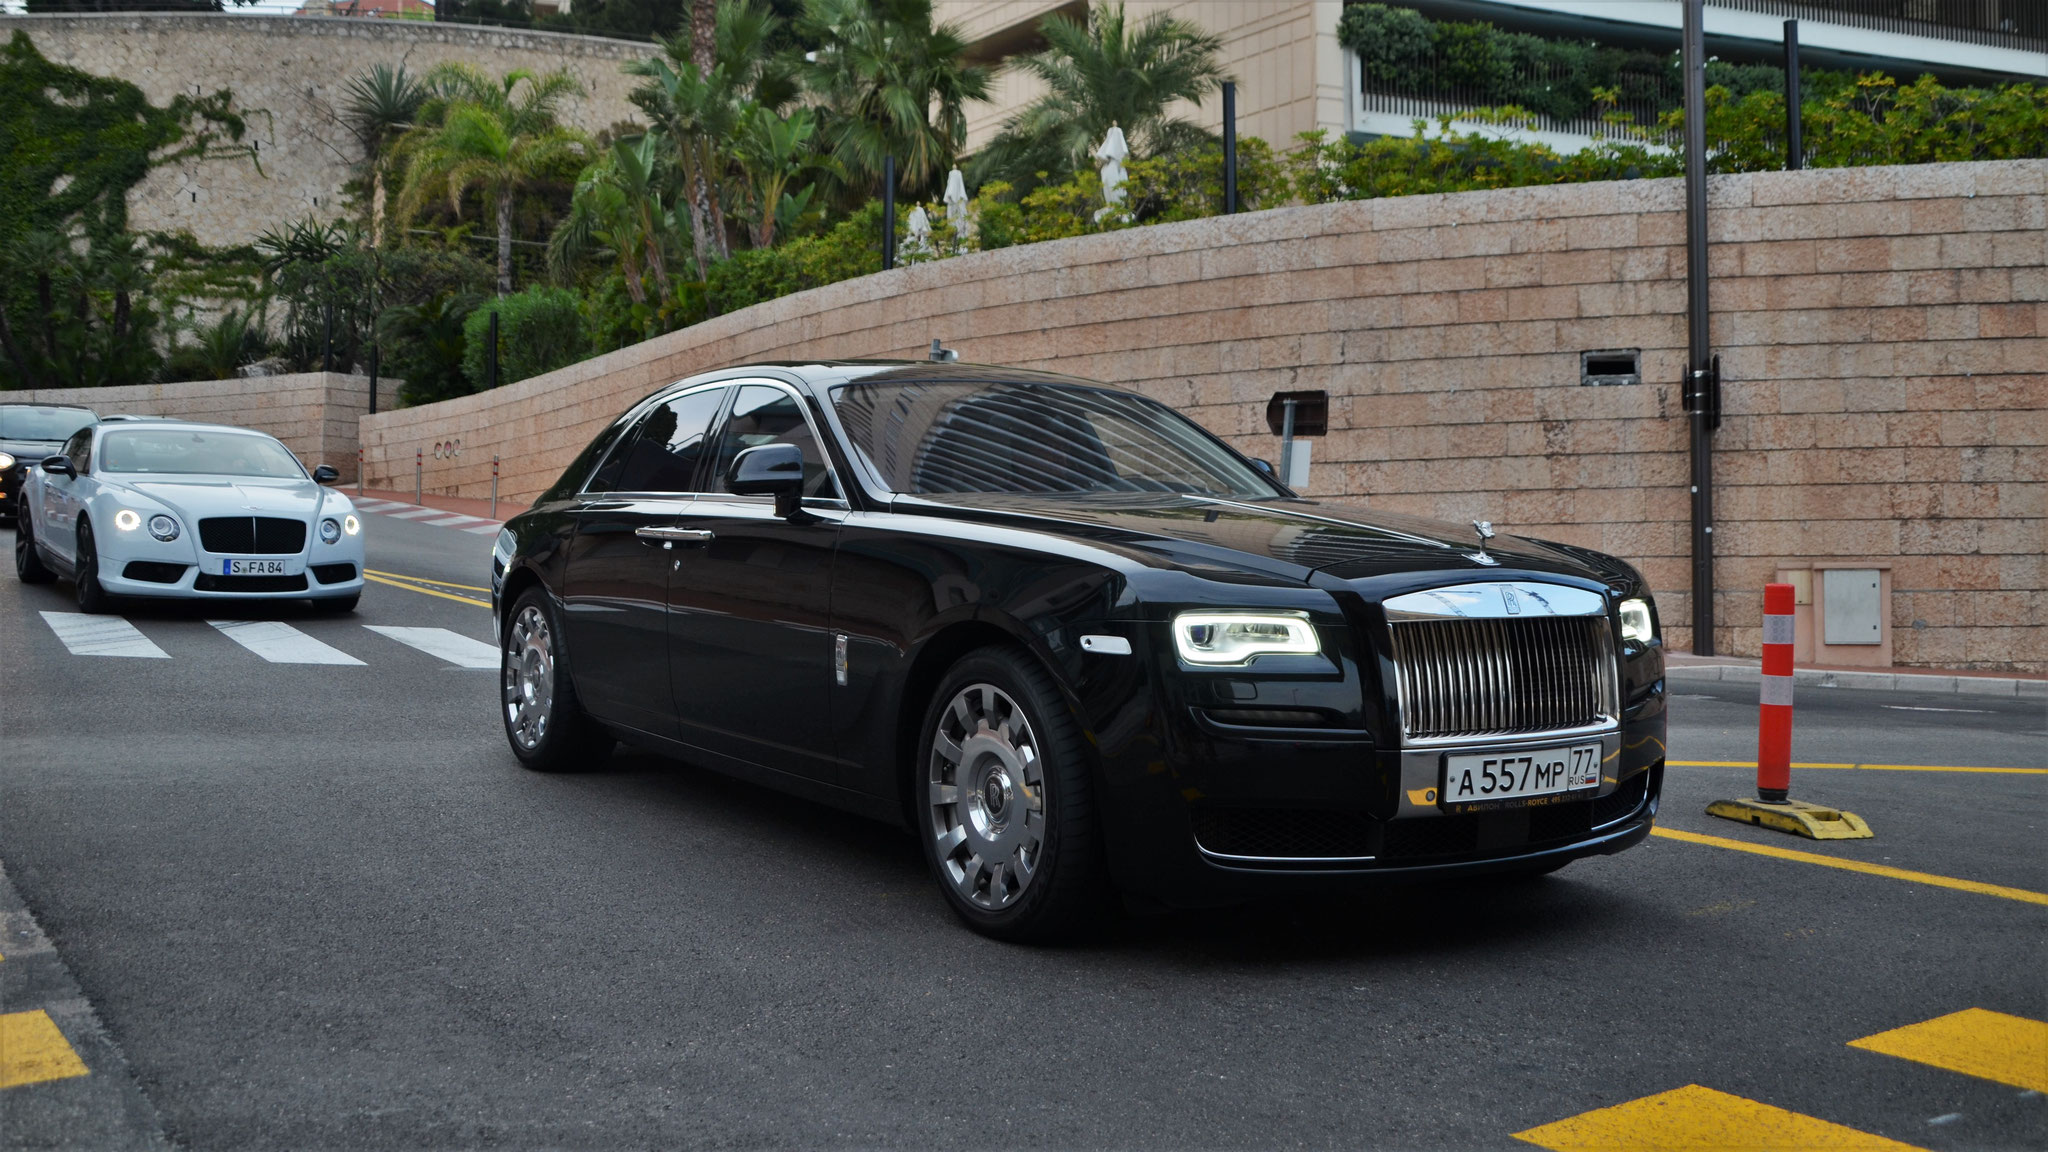 Rolls Royce Ghost Series II - A-557-MP-77 (RUS)